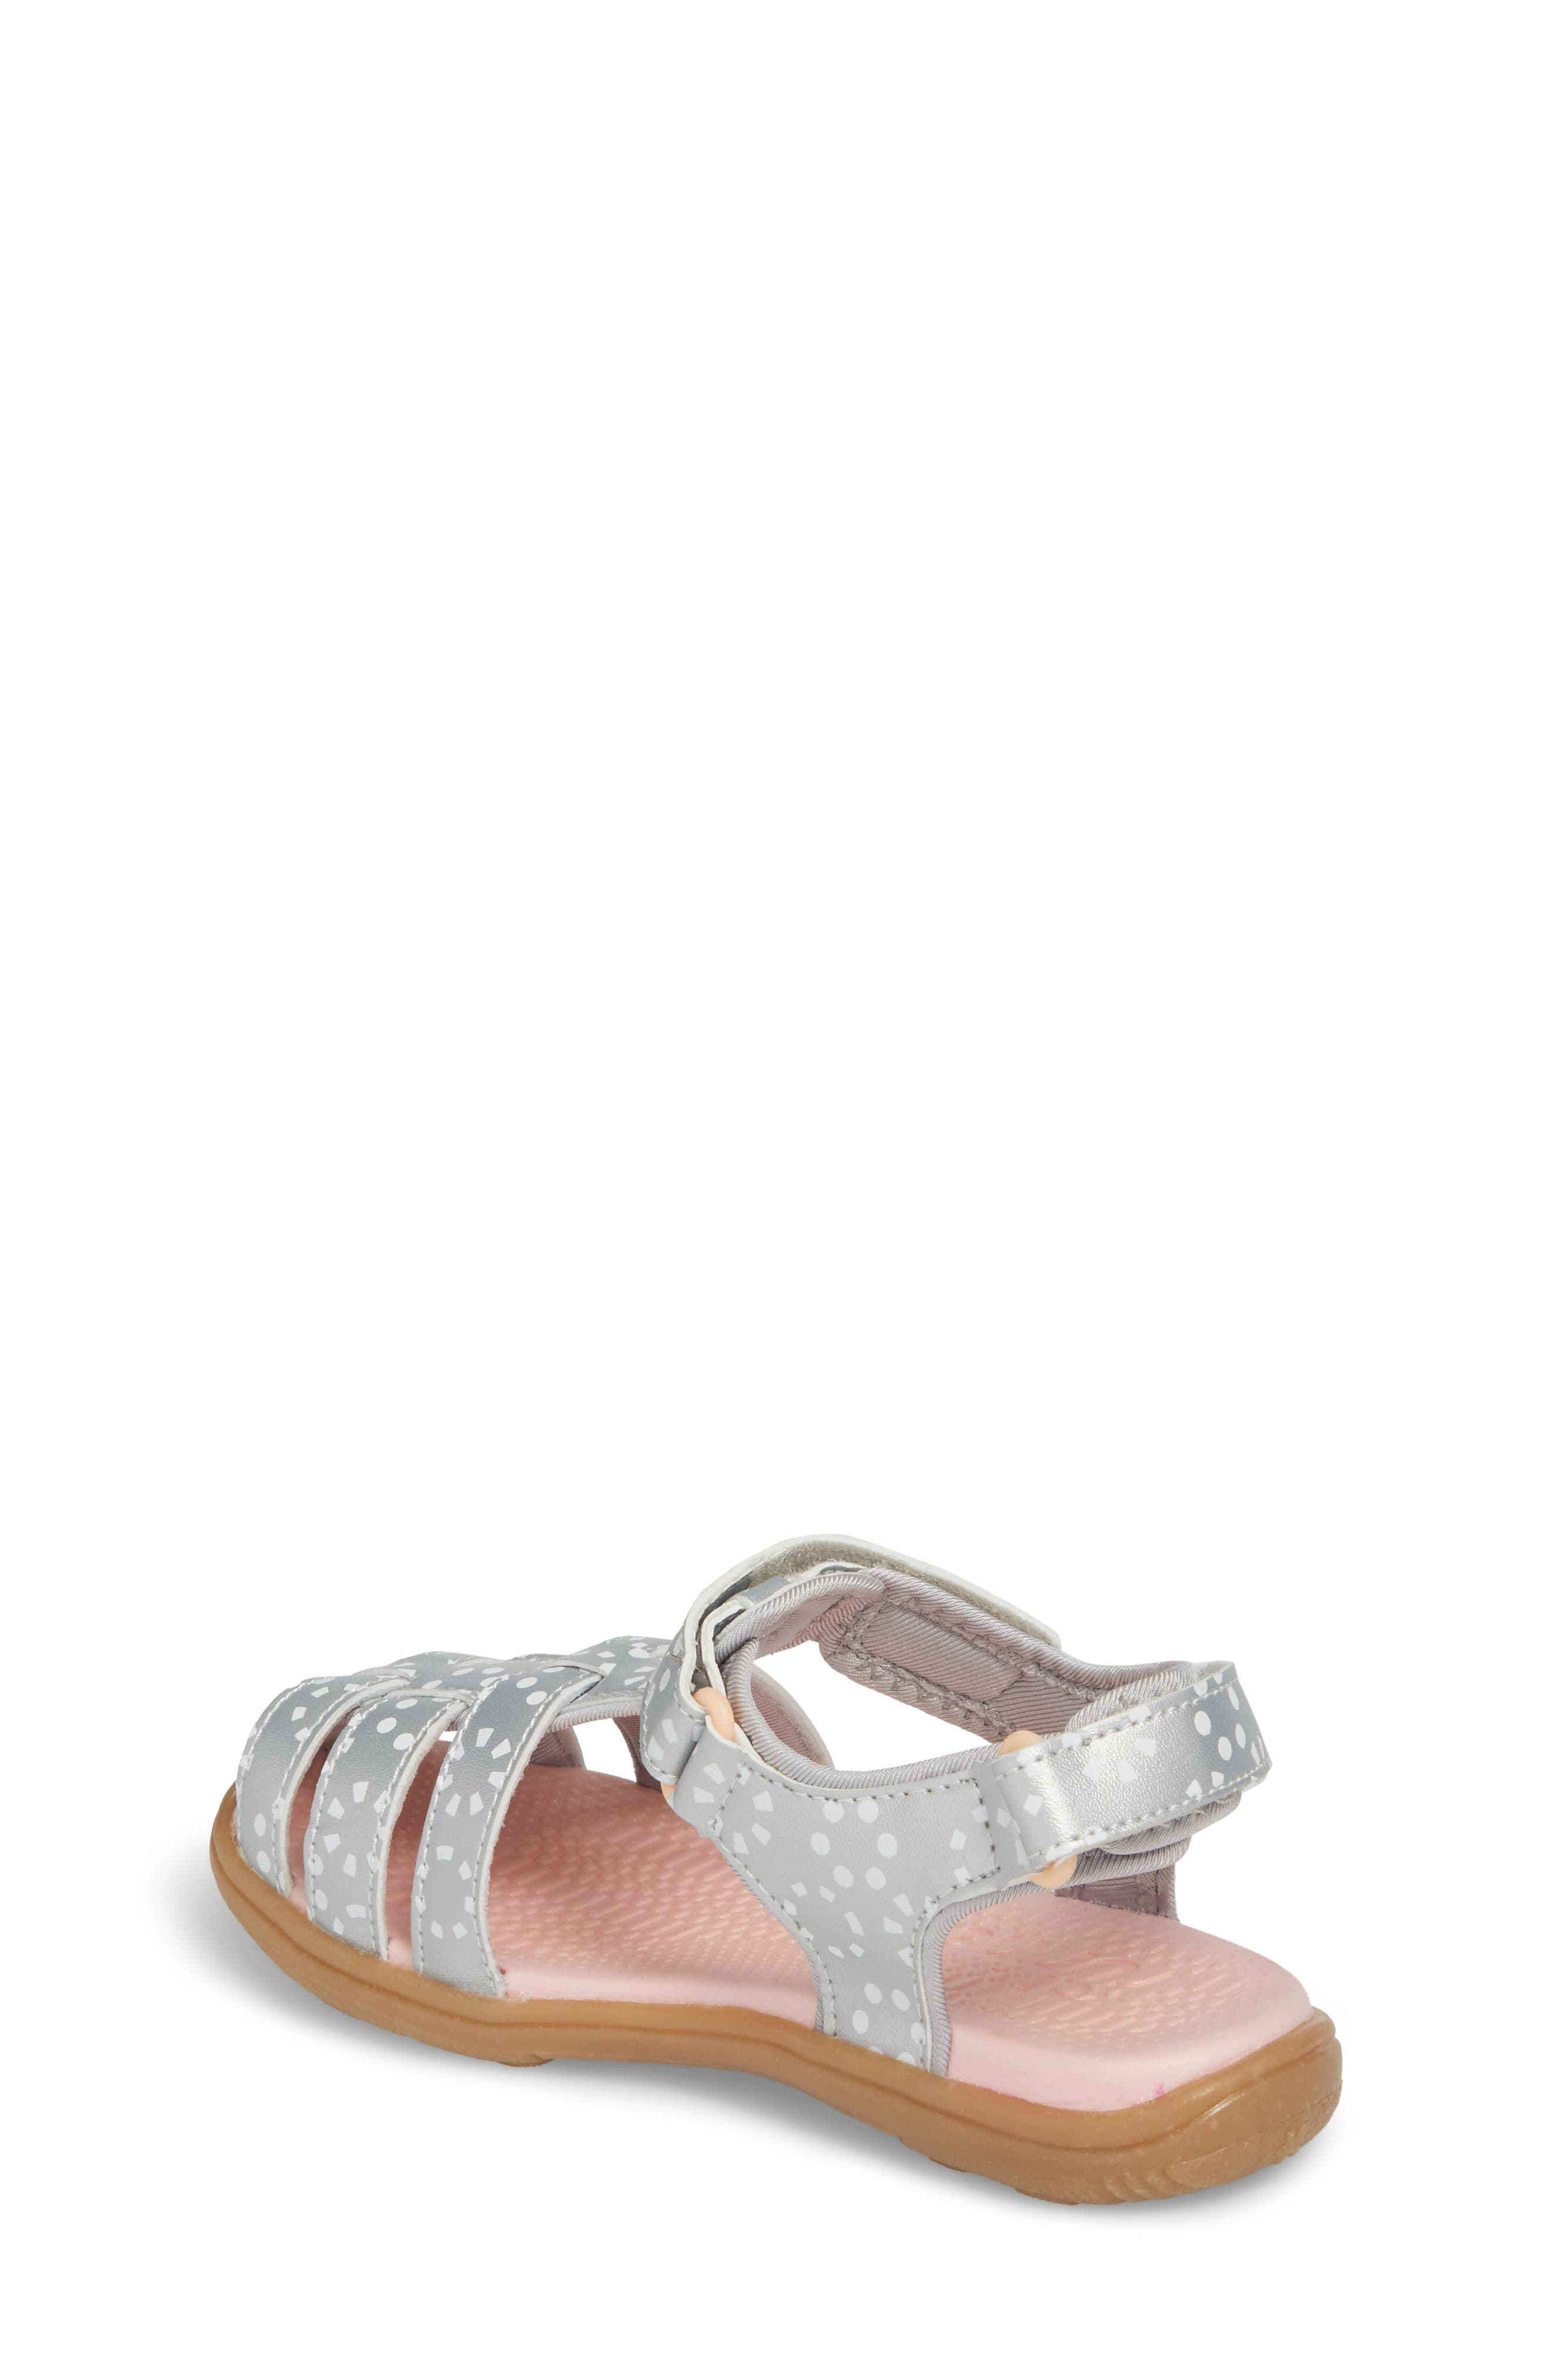 Paley Water Friendly Fisherman Sandal,                             Alternate thumbnail 3, color,                             Silver/ White